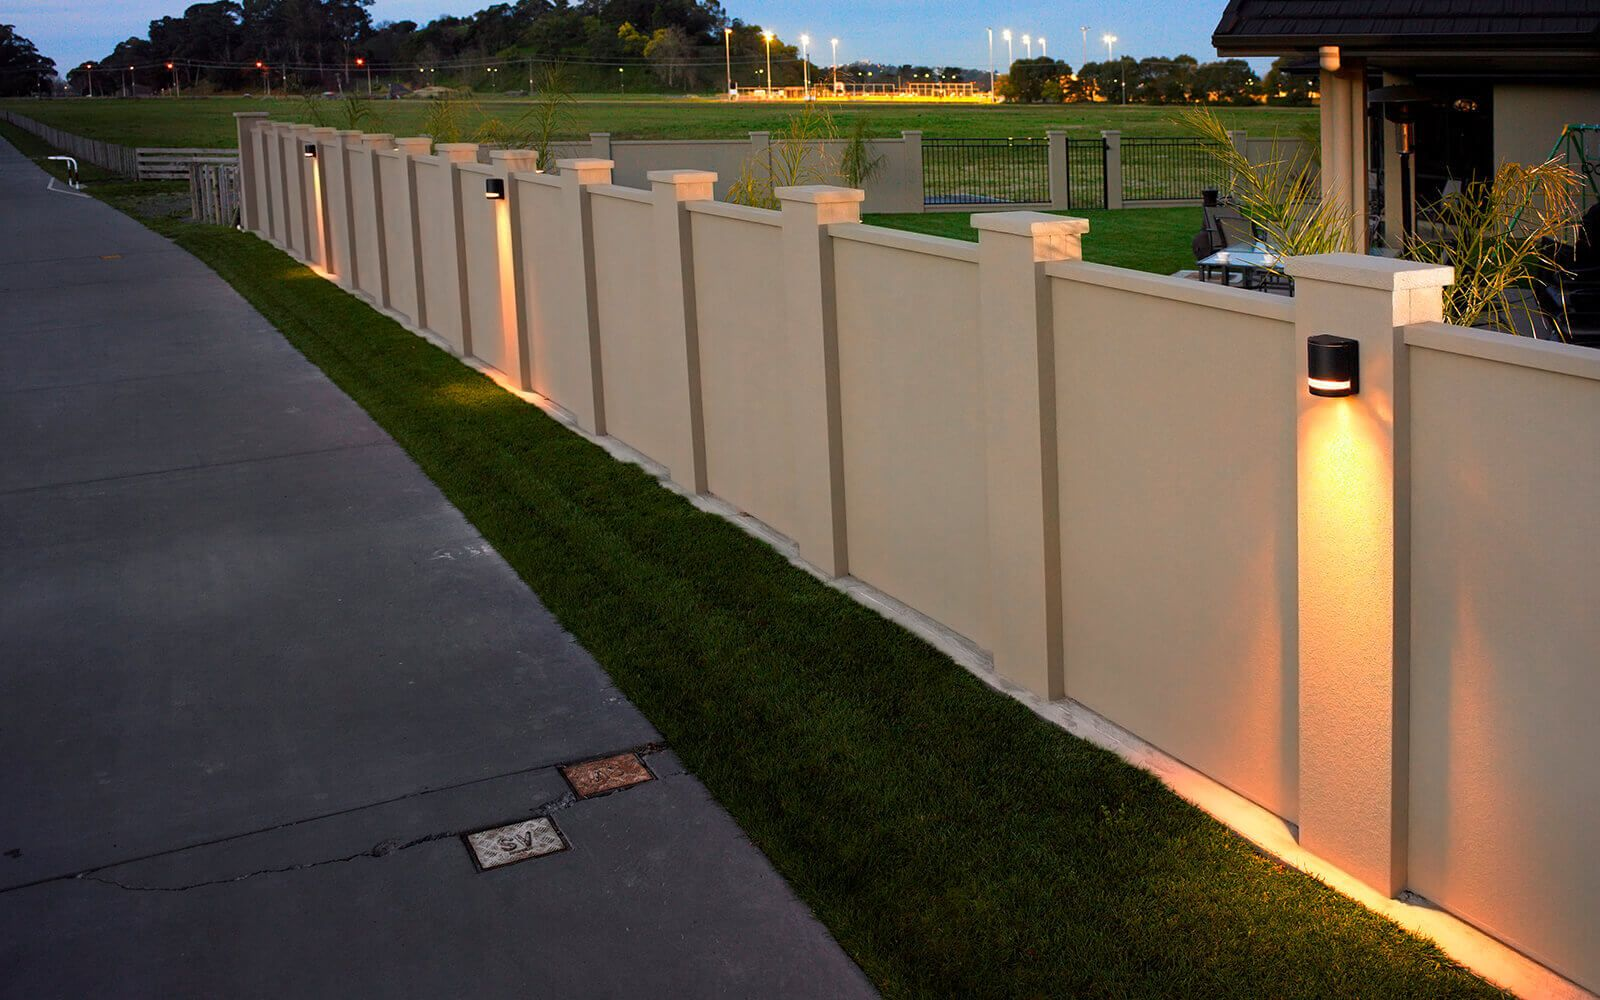 Gallery Modular Walls Fencing Noise Barriers Modularwalls House Fence Design Compound Wall Design Fence Wall Design